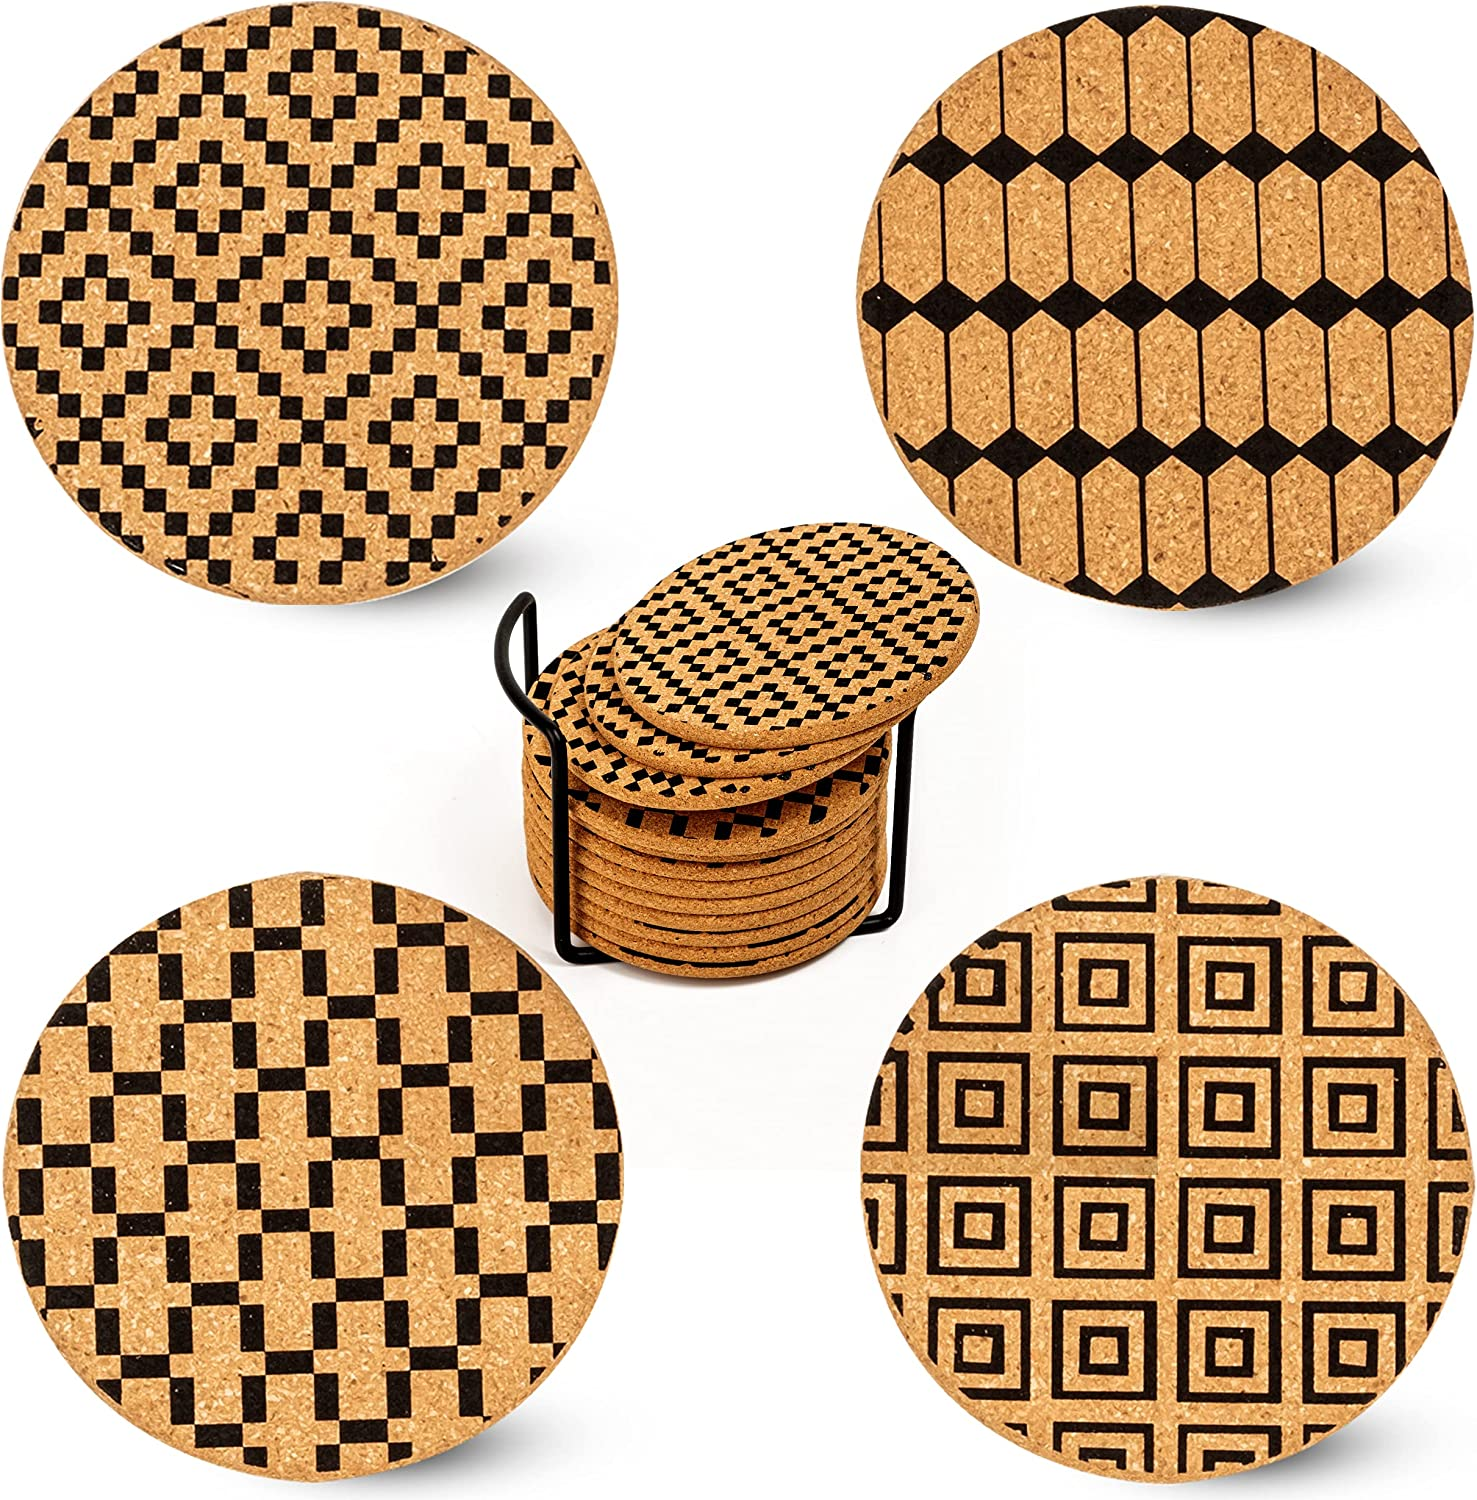 XEMARTO Coasters – 100% Natural Coasters for Drinks - Drink Coasters for Daily Use – Cork Coasters - Coasters for Wooden Table - Super Absorbent Coasters - Coaster Set for Gifts (Pack of 12)